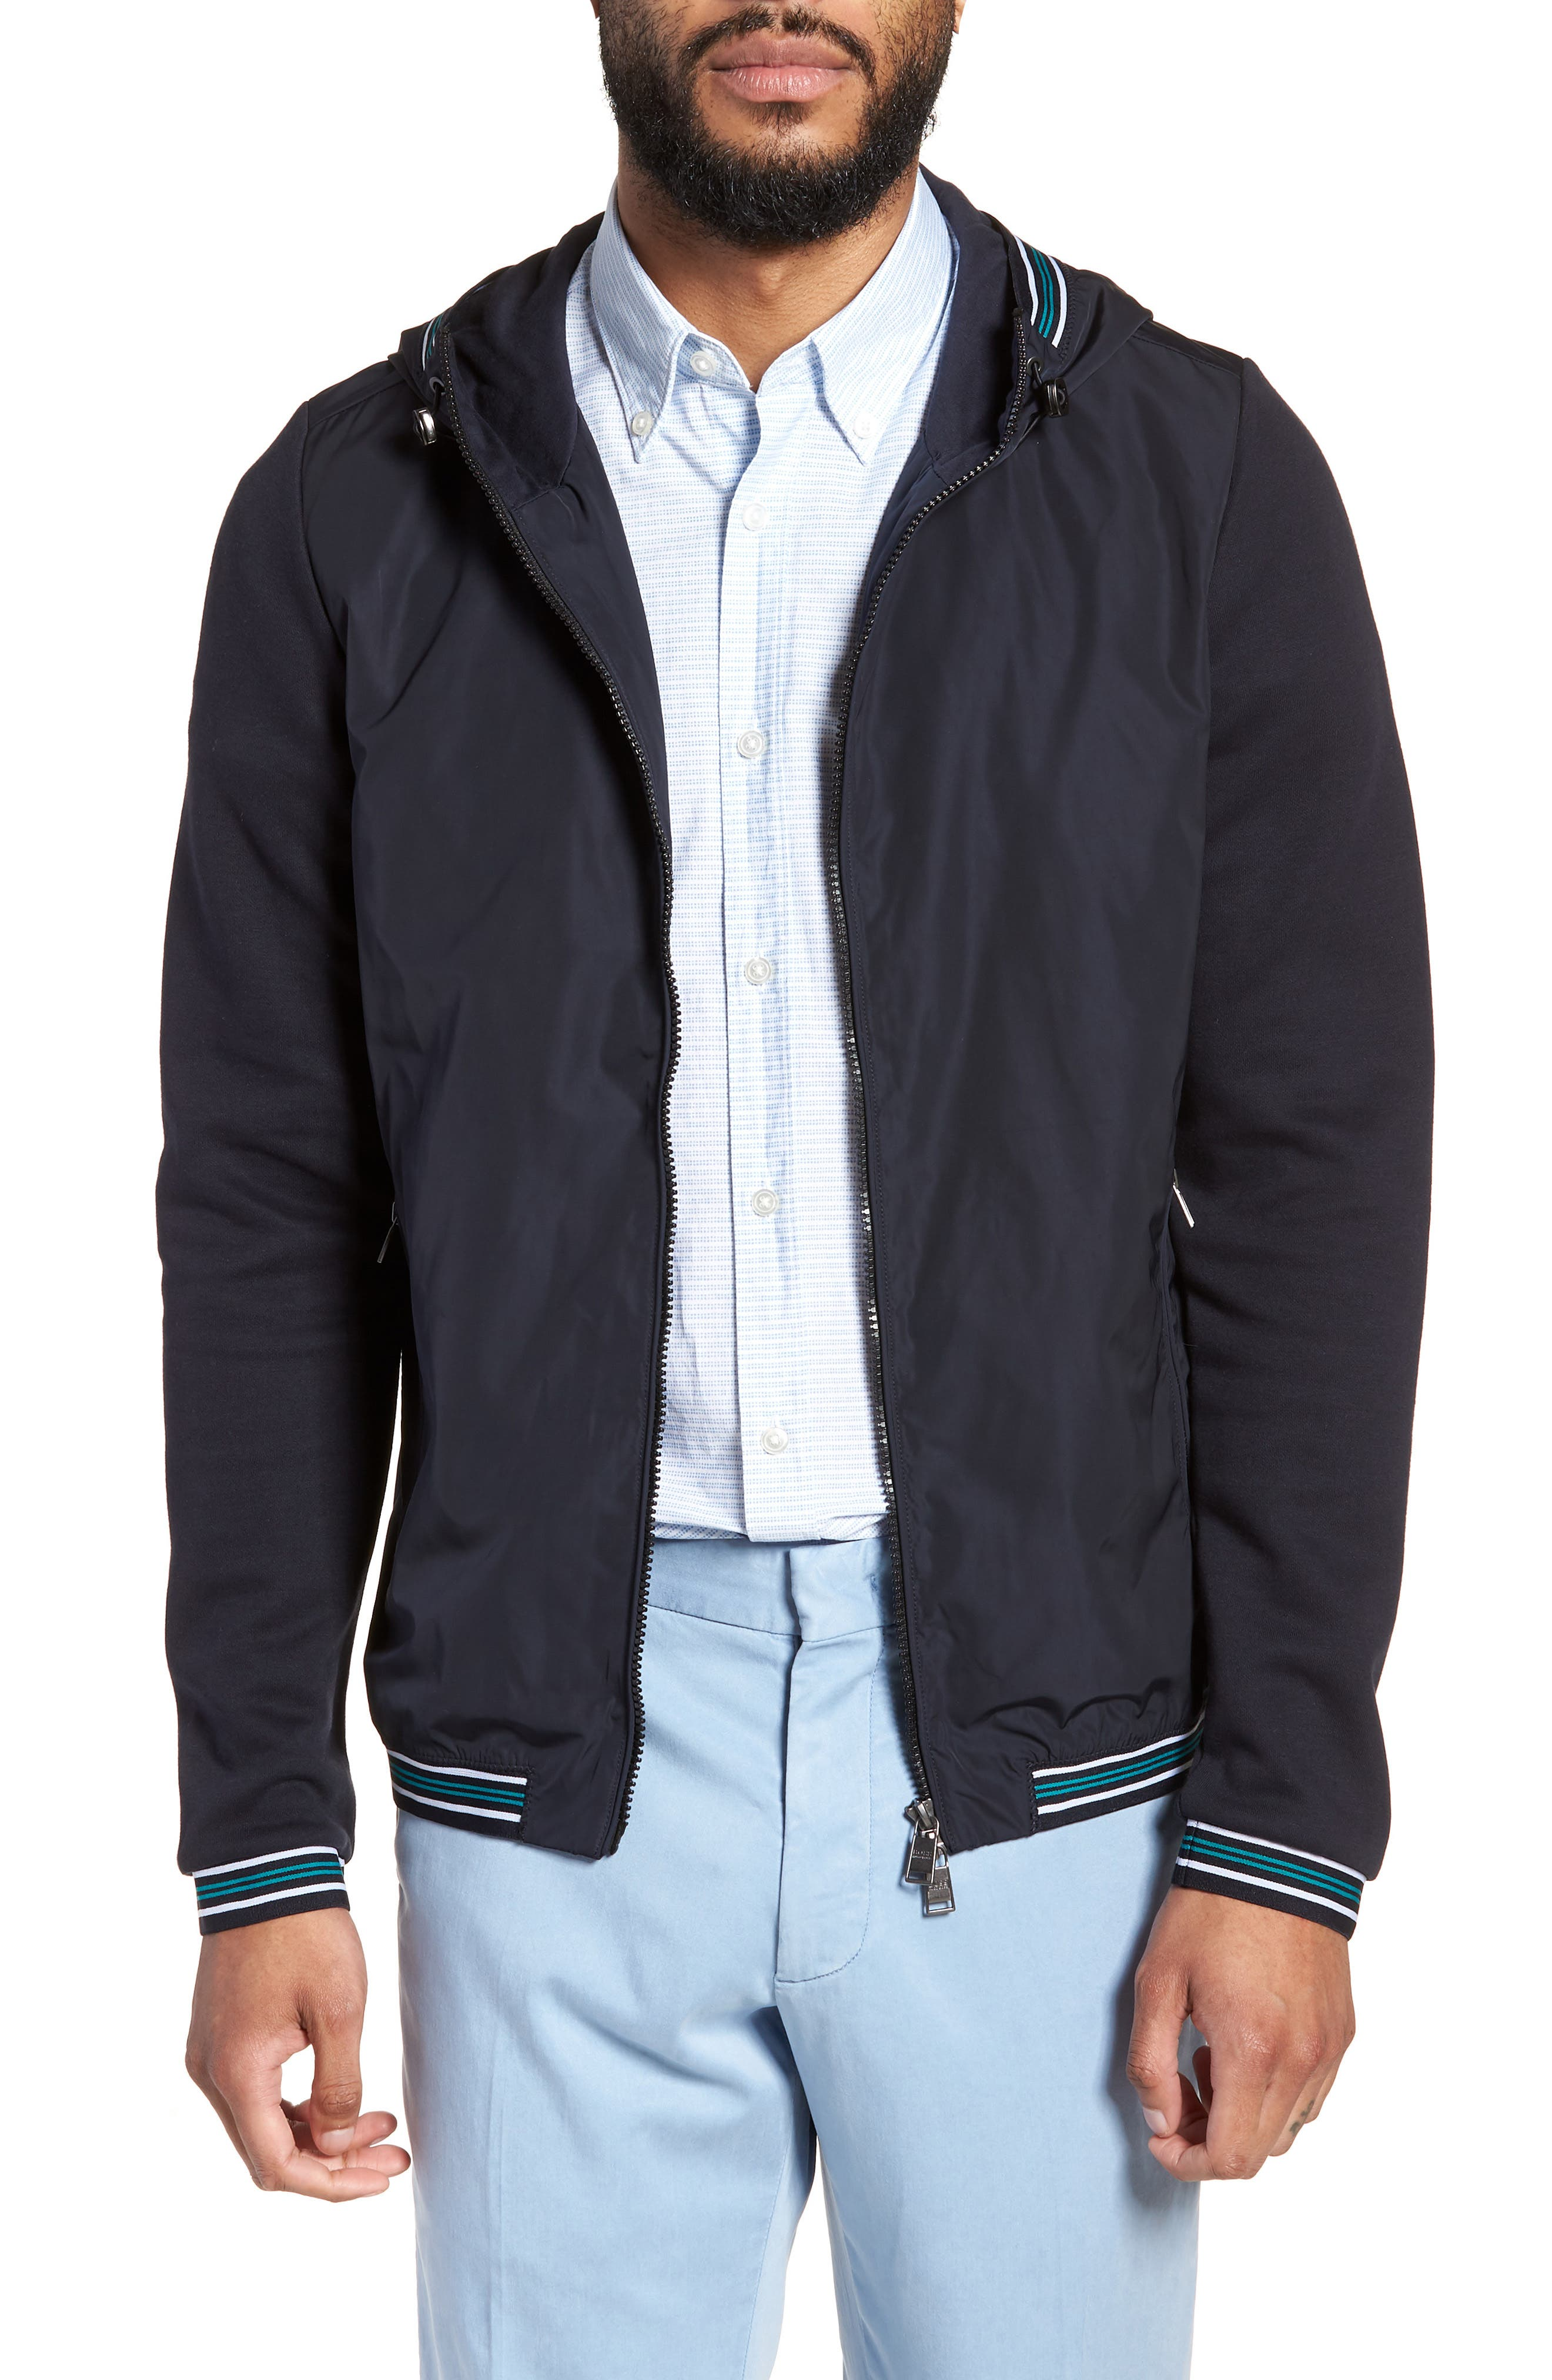 Sibly Slim Fit Jersey Hooded Jacket,                         Main,                         color, Blue